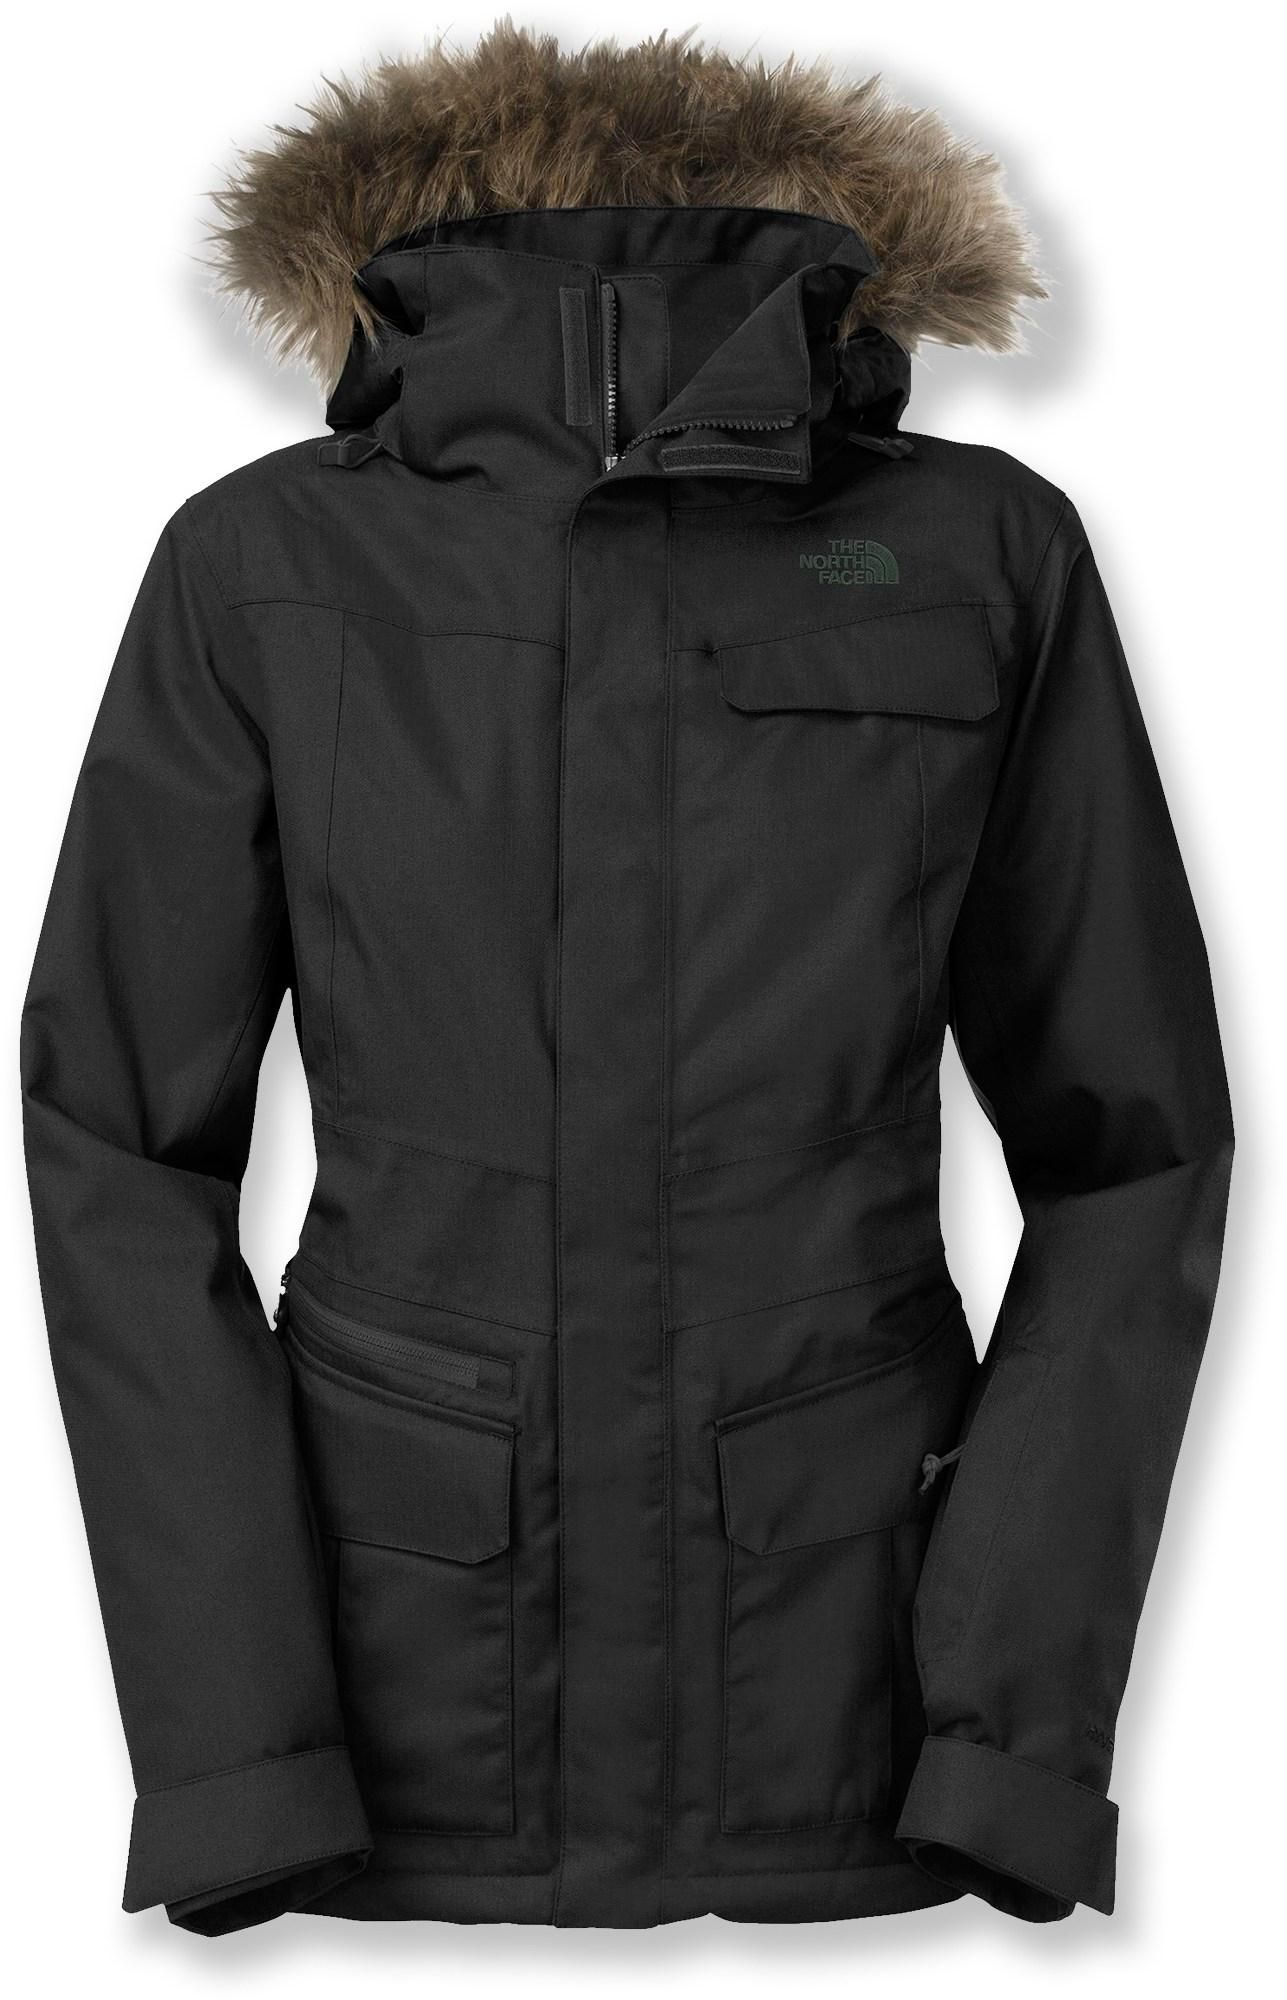 Love this cut and fit! The North Face Baker Delux Insulated Jacket ... 343635ddd1